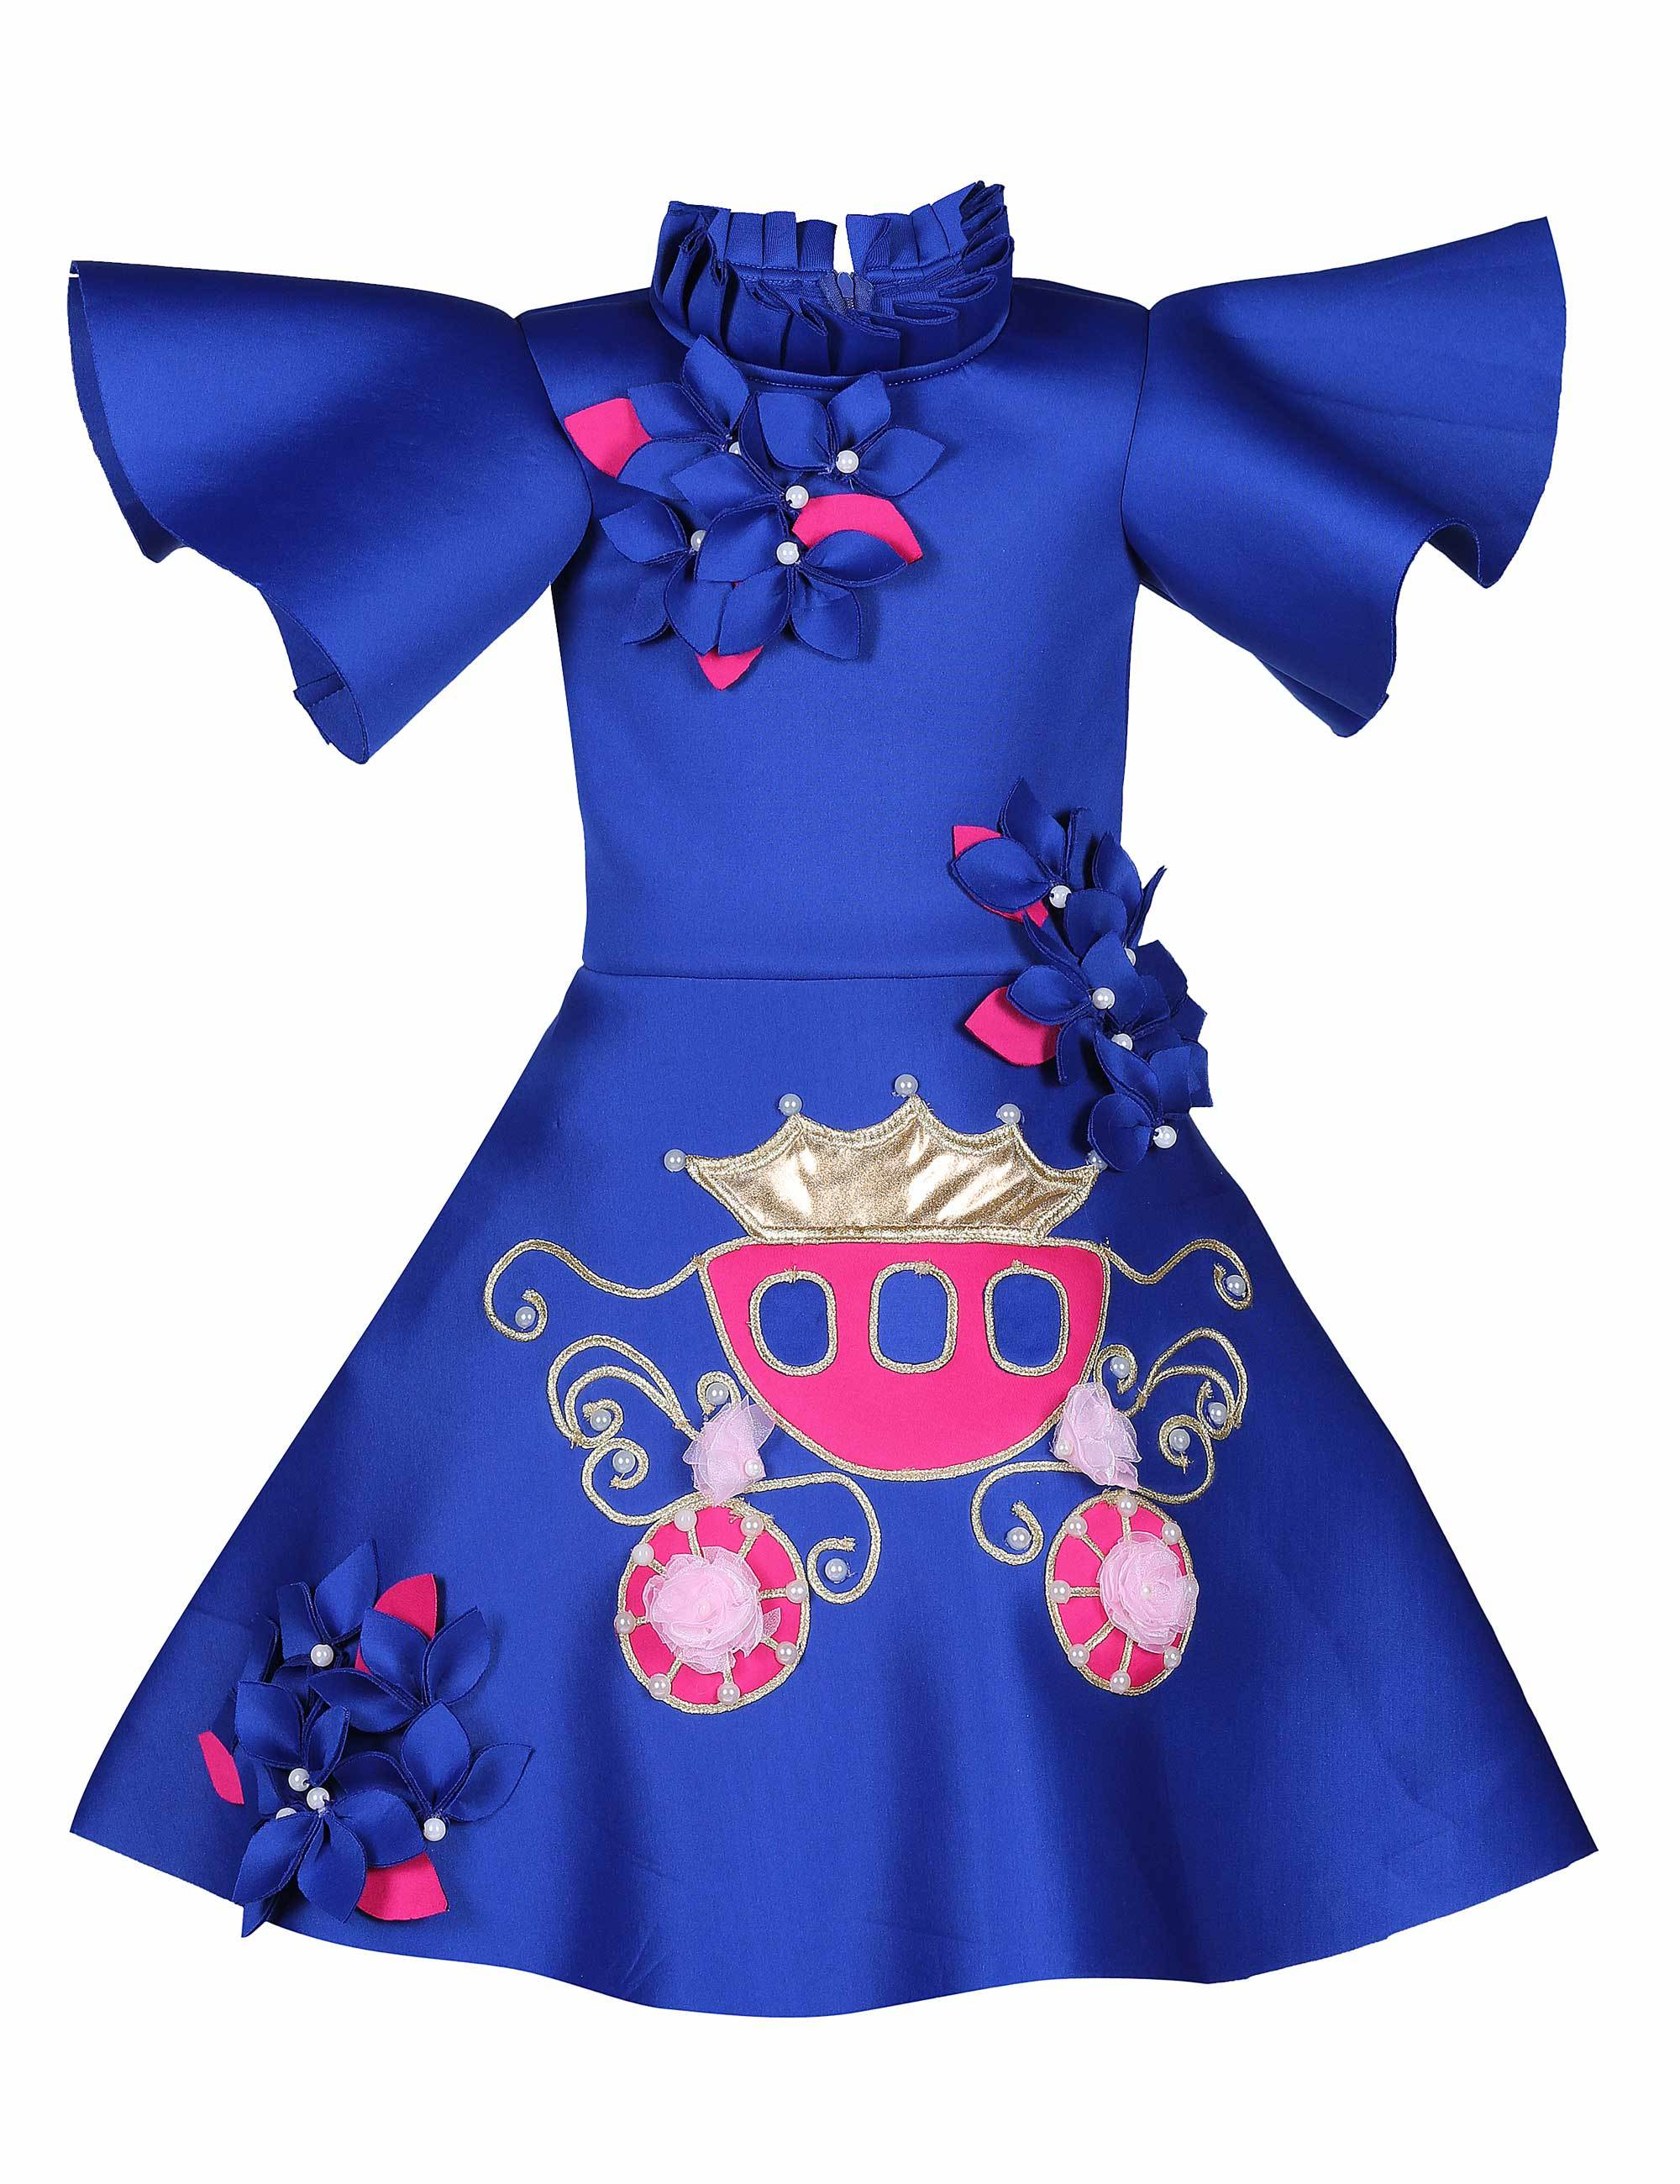 Blue Carriage Knee Length Dress for Girls